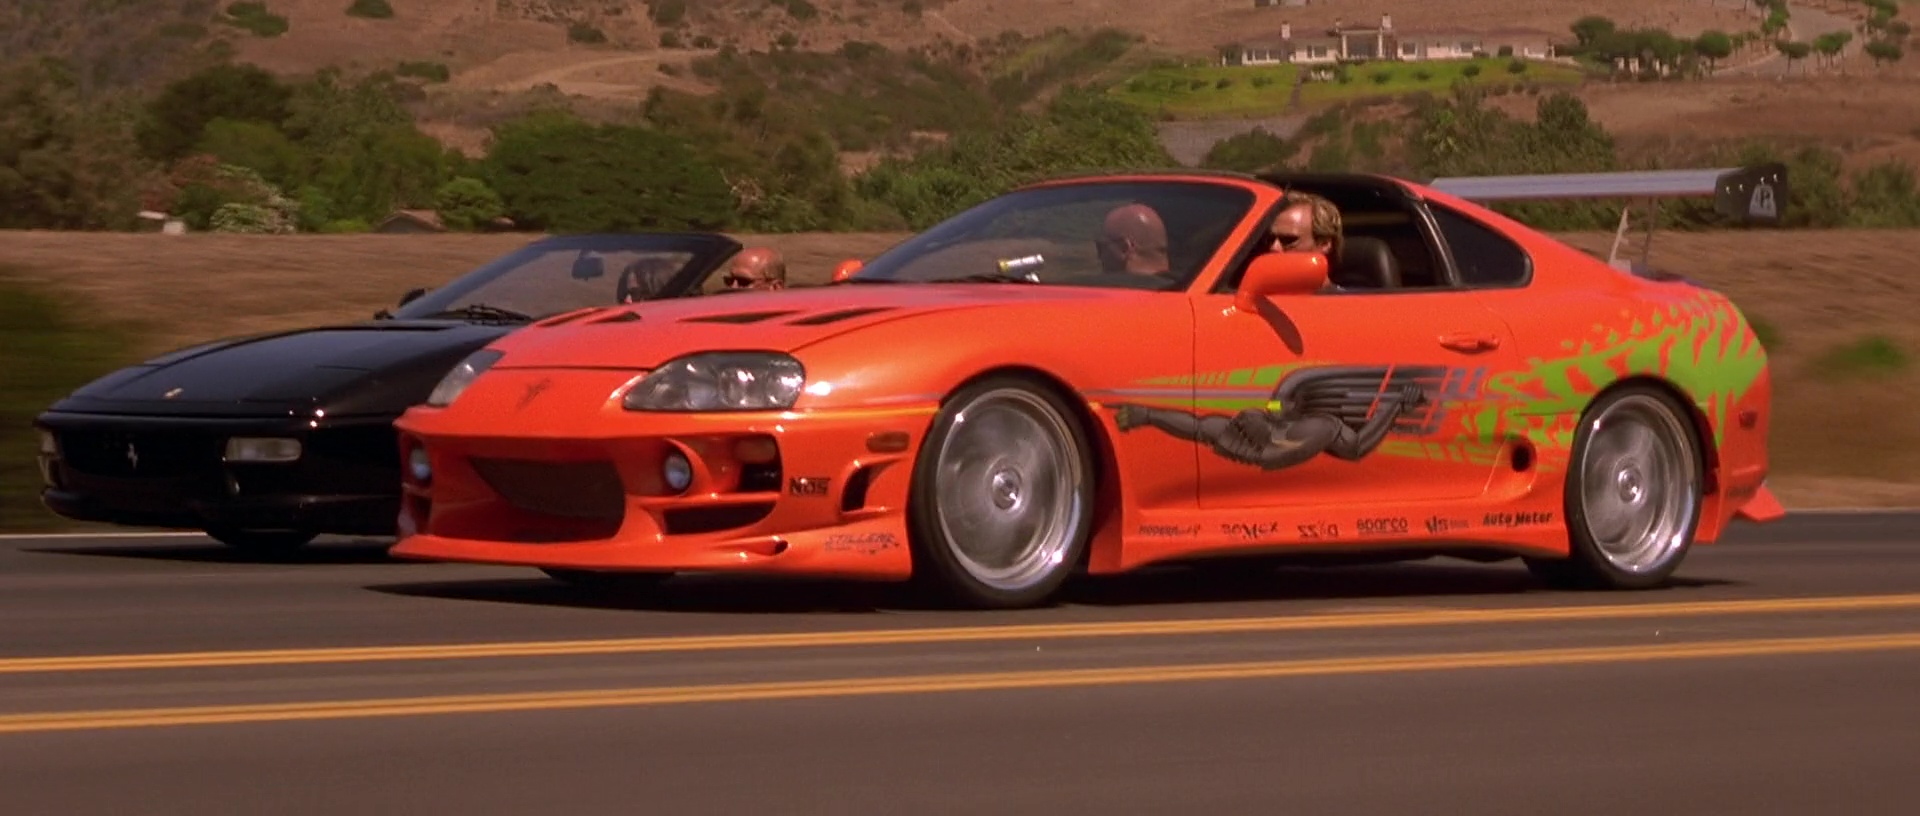 Toyota Supra The Fast And The Furious >> 1994 Toyota Supra Mk Iv The Fast And The Furious Wiki Fandom